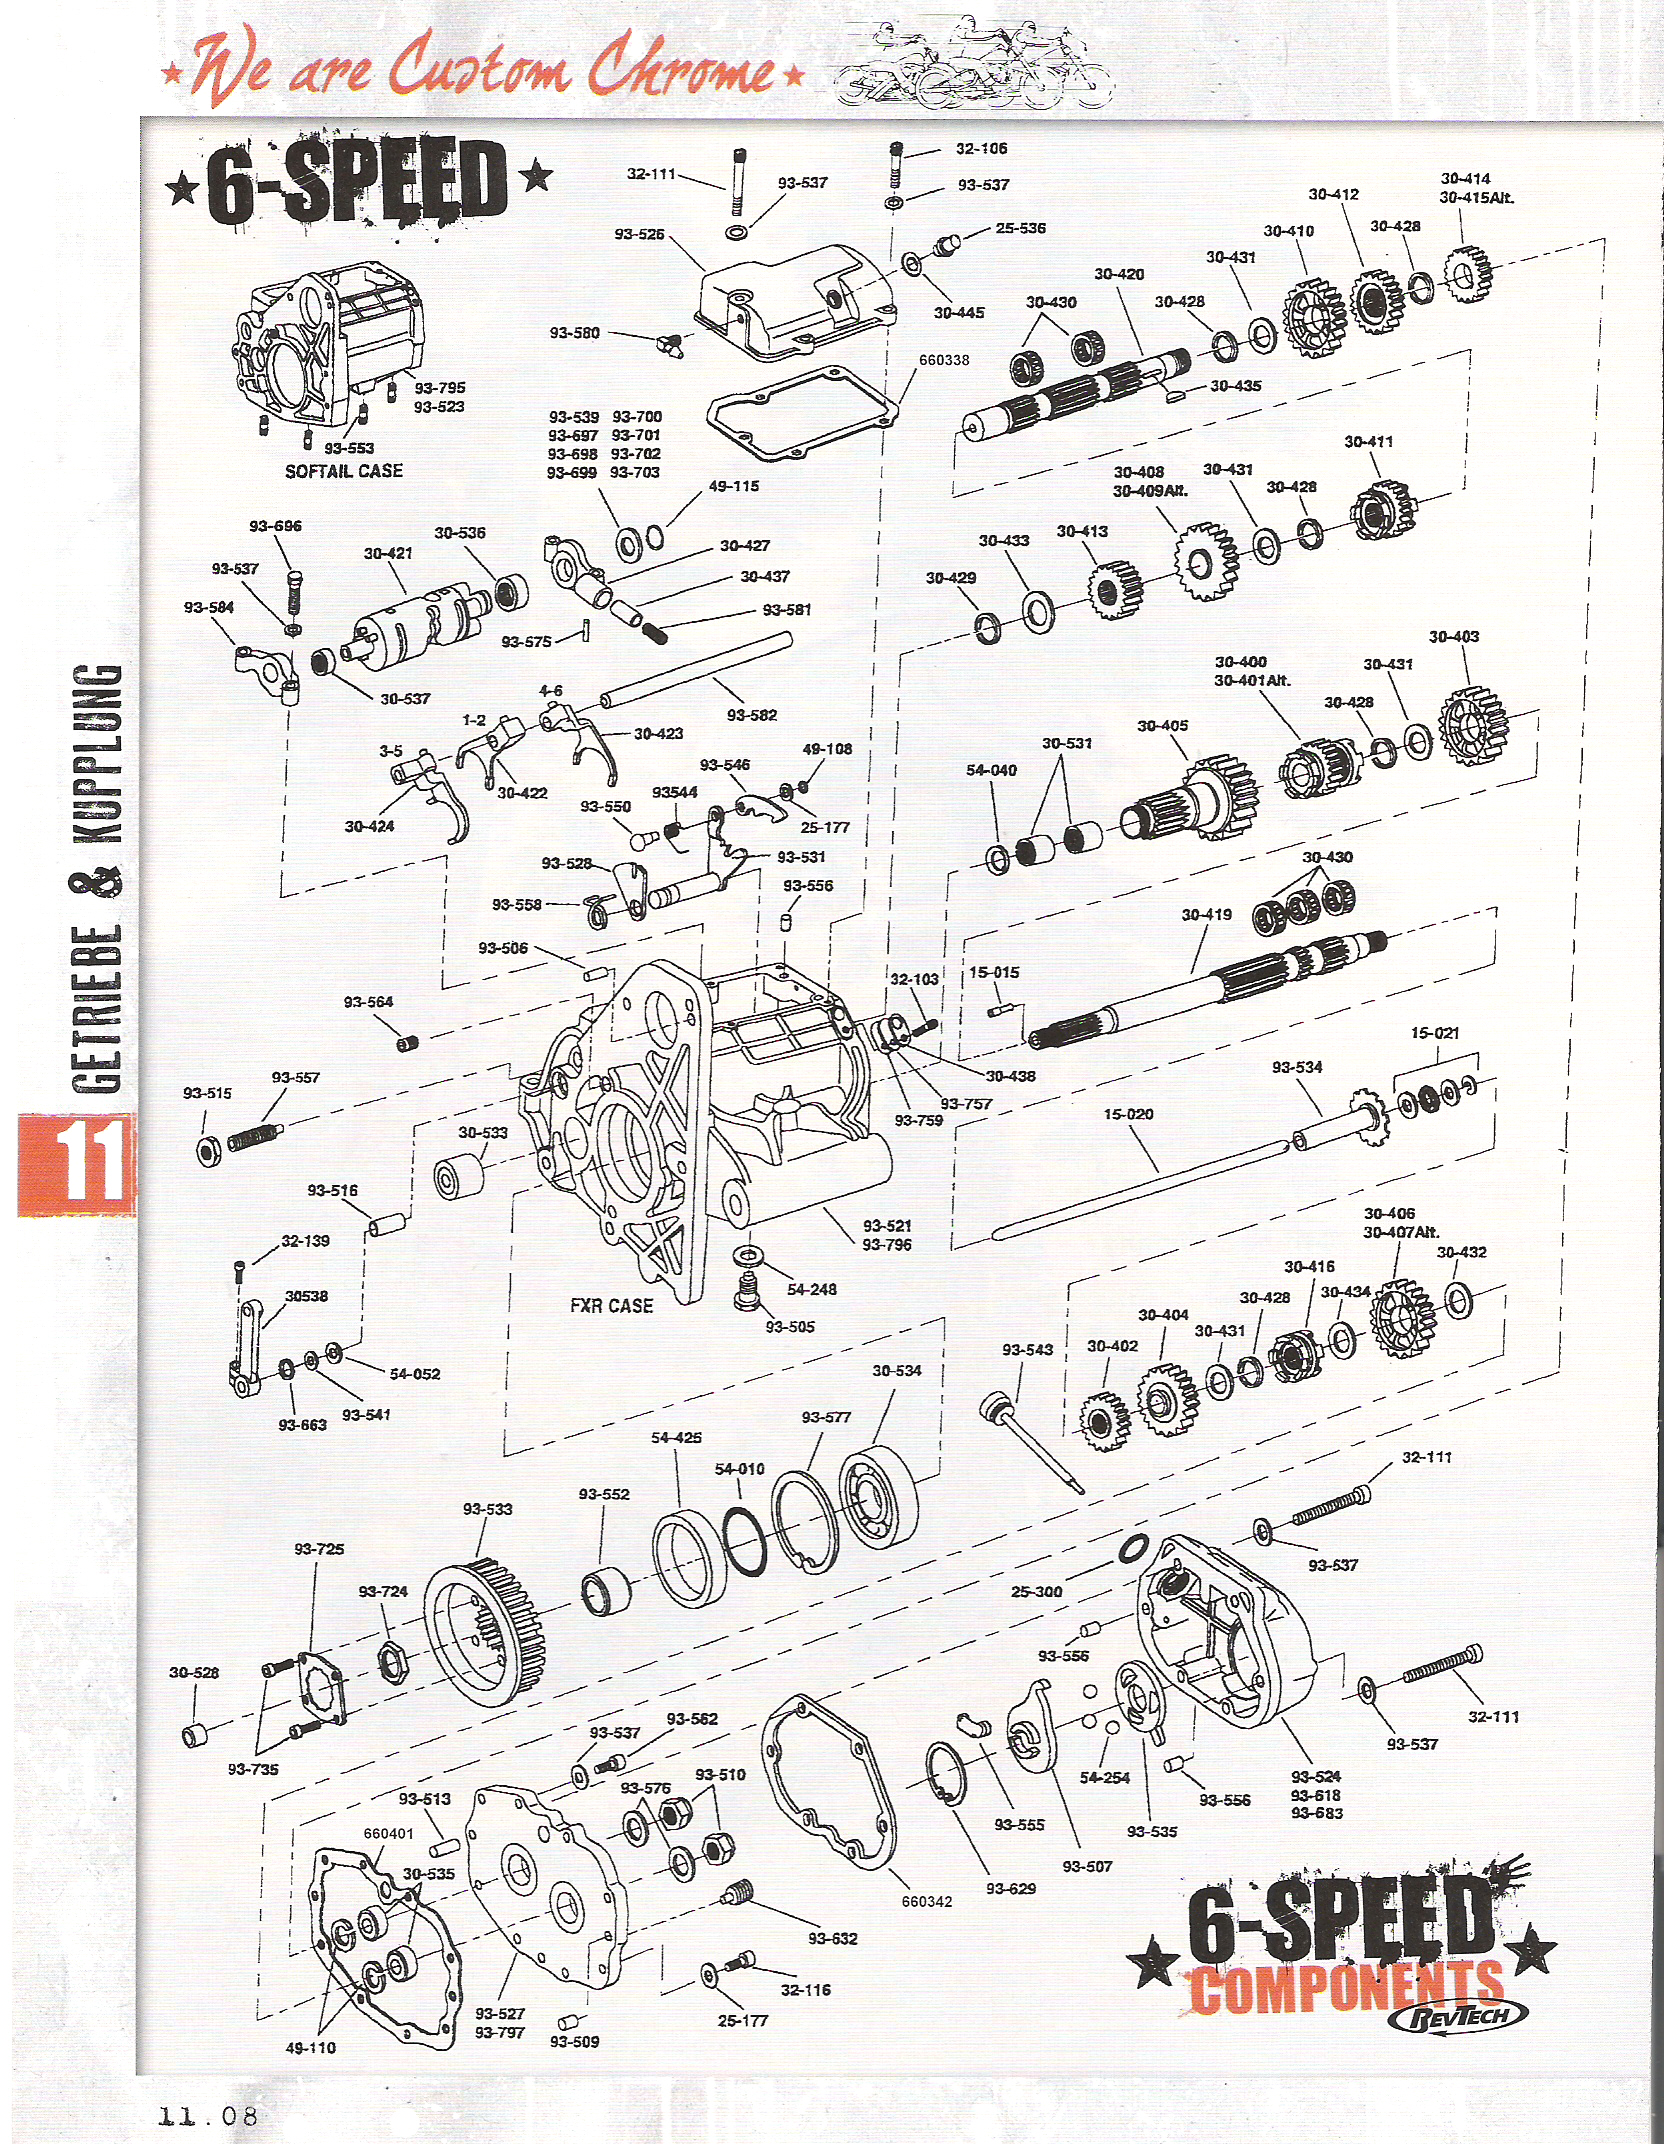 fuse box 1990 harley softail  diagrams  auto fuse box diagram